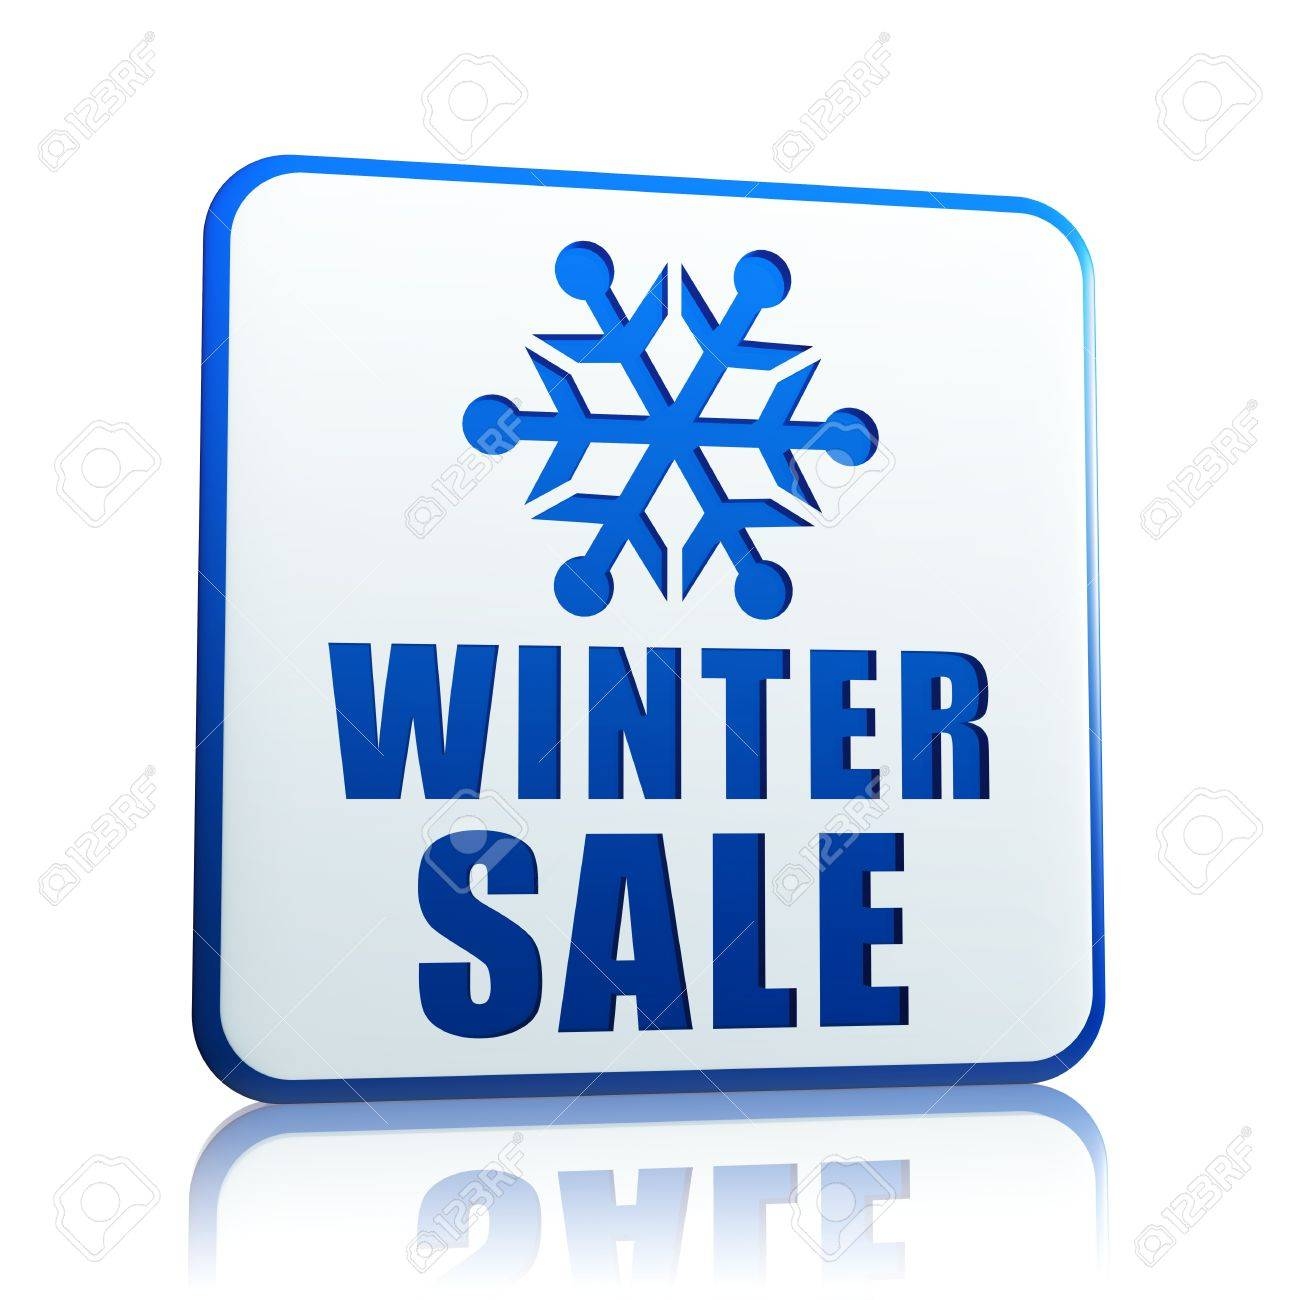 winter sale 3d white banner with blue text and snowflake symbol, business concept Stock Photo - 16519375